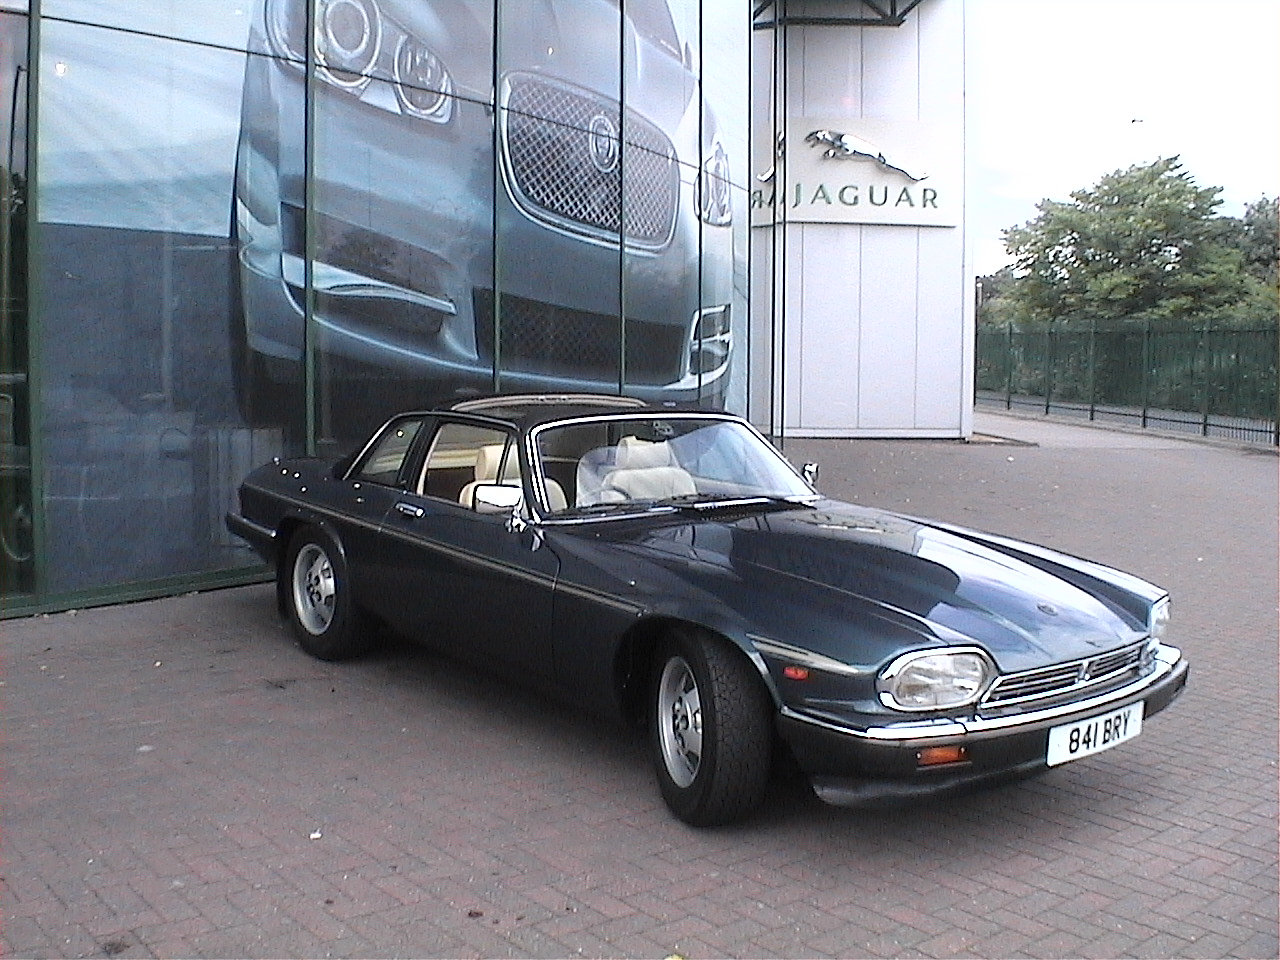 jaguar xjs built to be driven xjs club 841 bry owners manual kobalt lawnmower Automobile Owners Manual